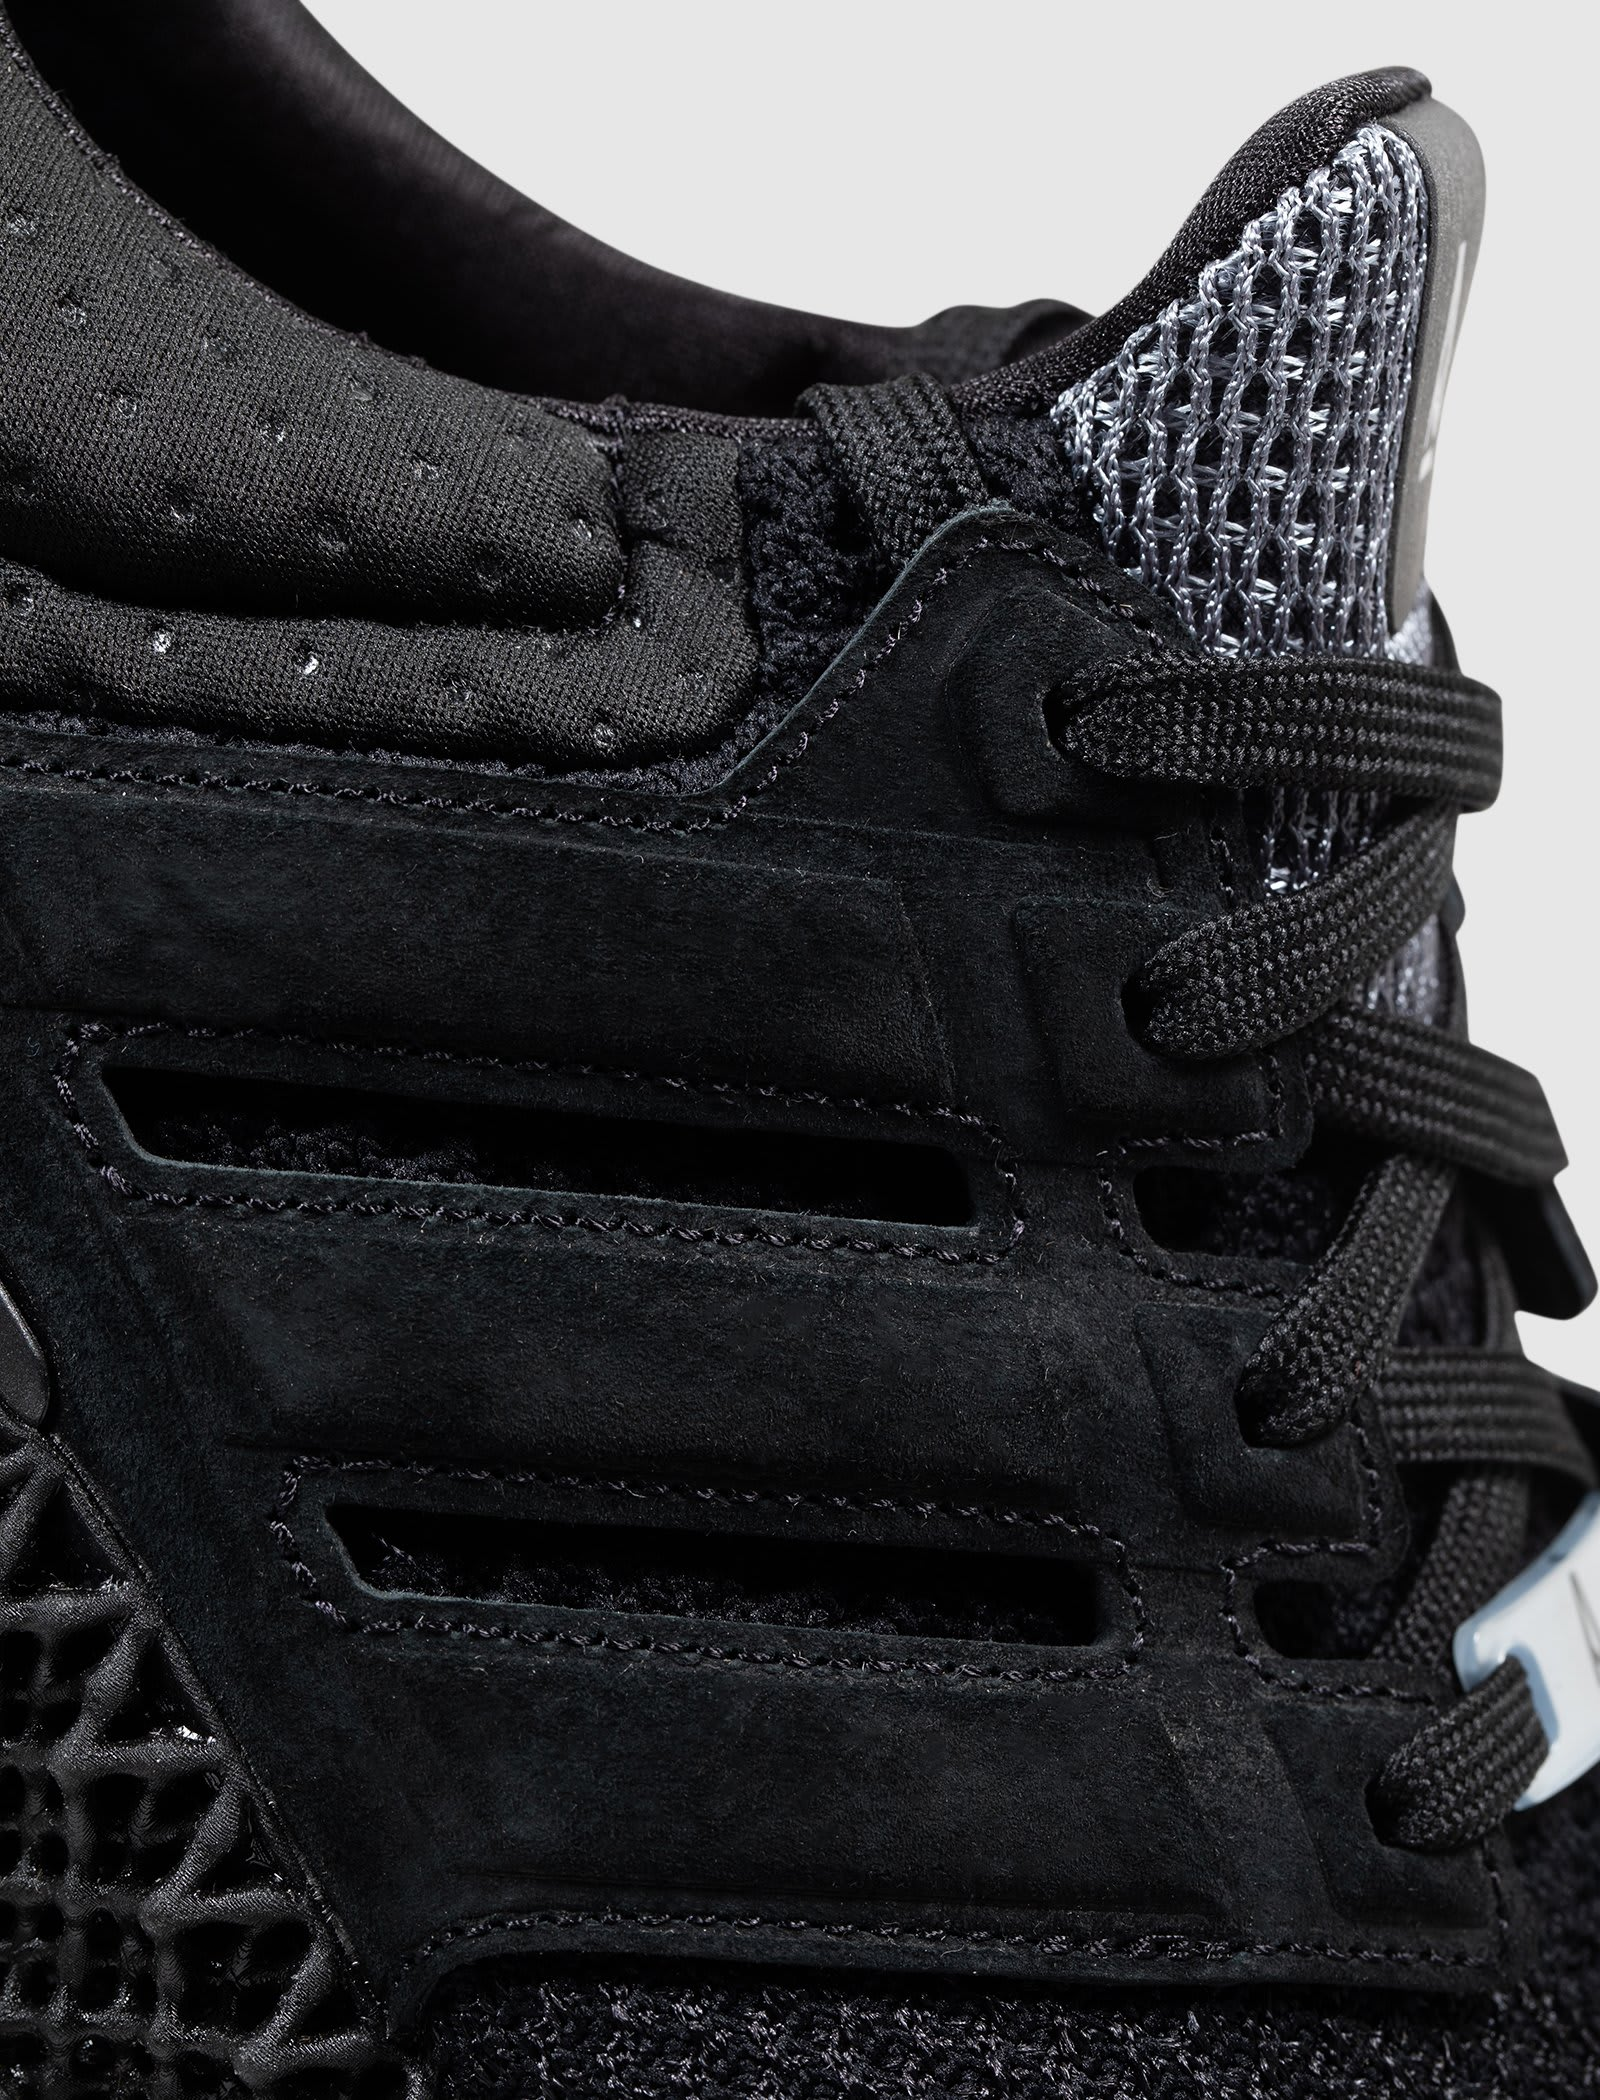 A Ma Maniere Adidas Ultra 4D G55274 Release Date Cage